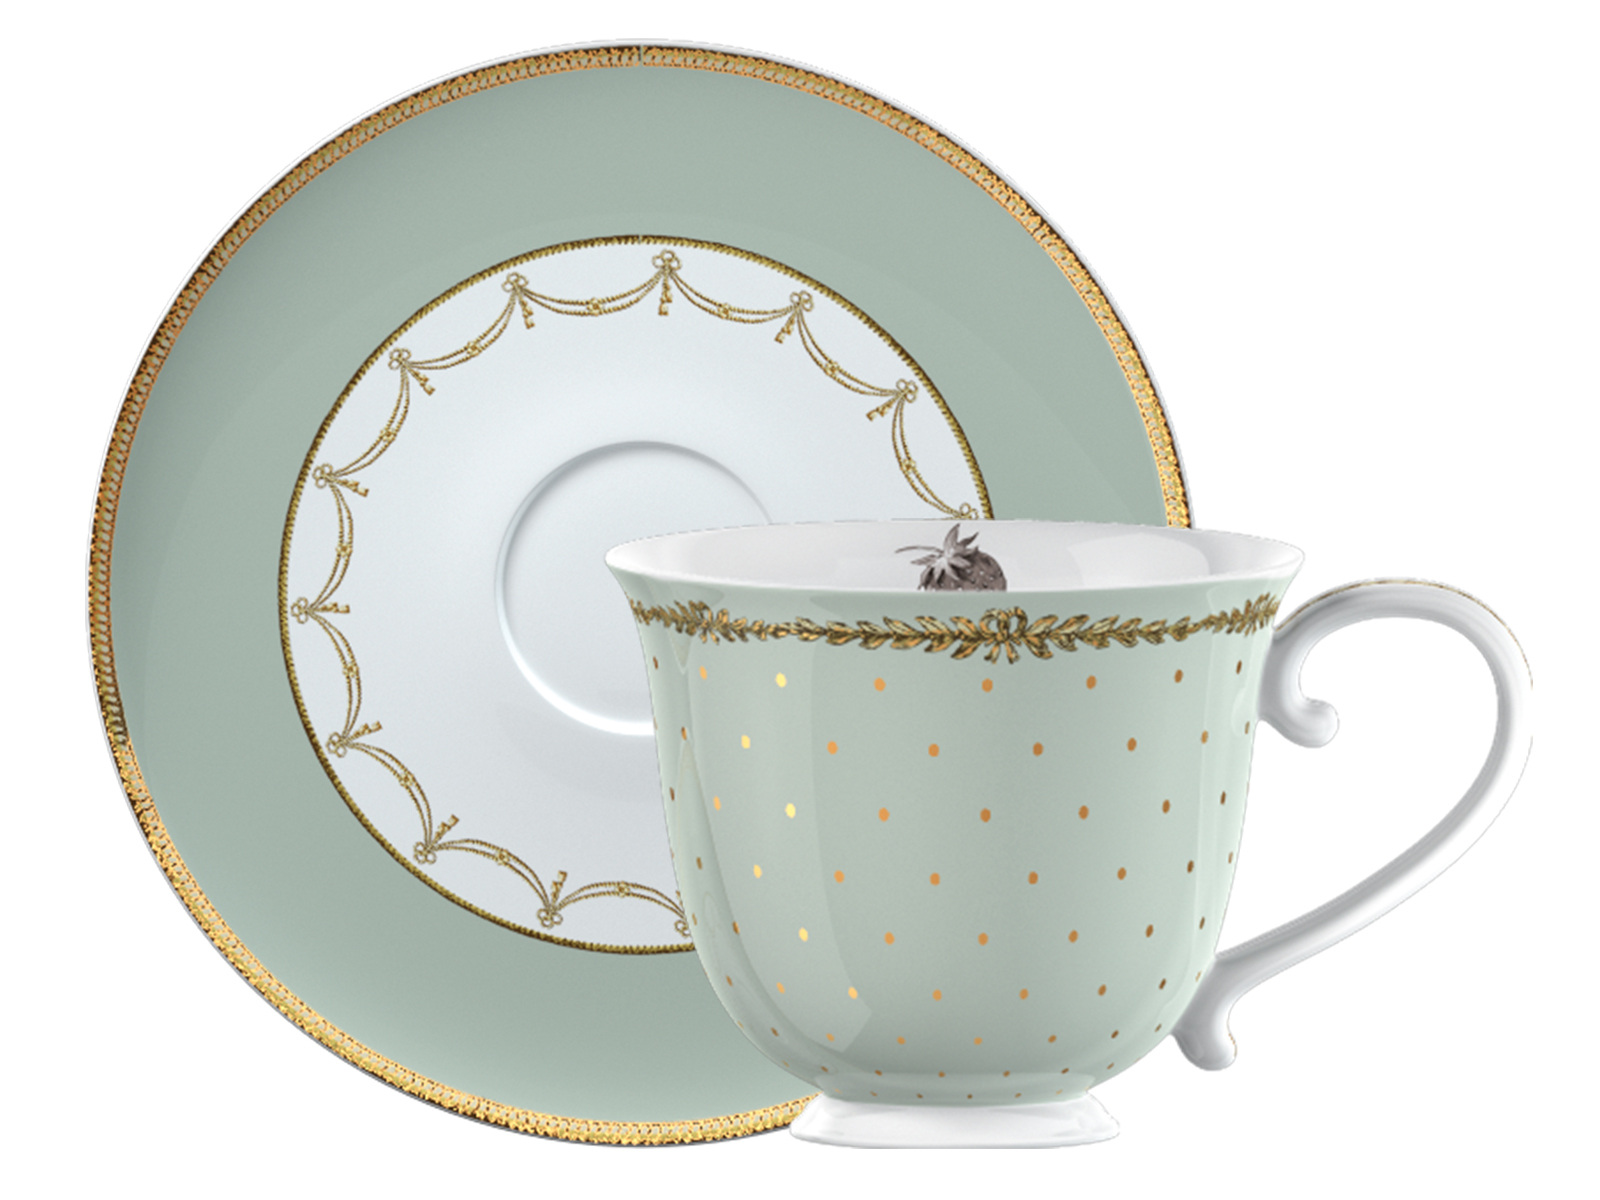 Katie Alice Cupcake Couture Tea Cup And Saucer